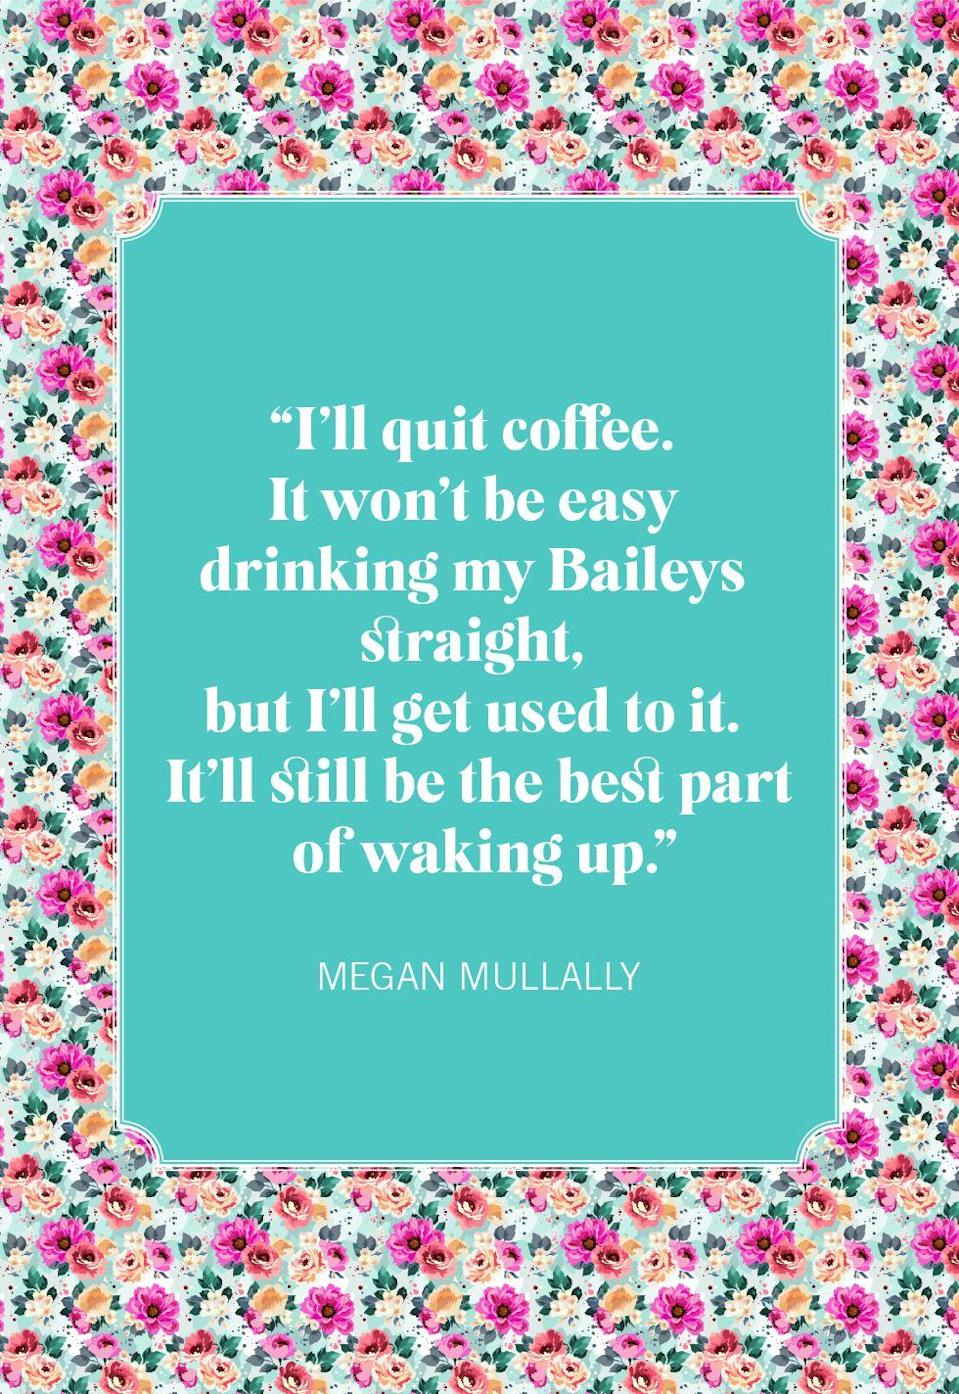 """<p>""""I'll quit coffee. It won't be easy drinking my Baileys straight, but I'll get used to it. It'll still be the best part of waking up.""""</p>"""